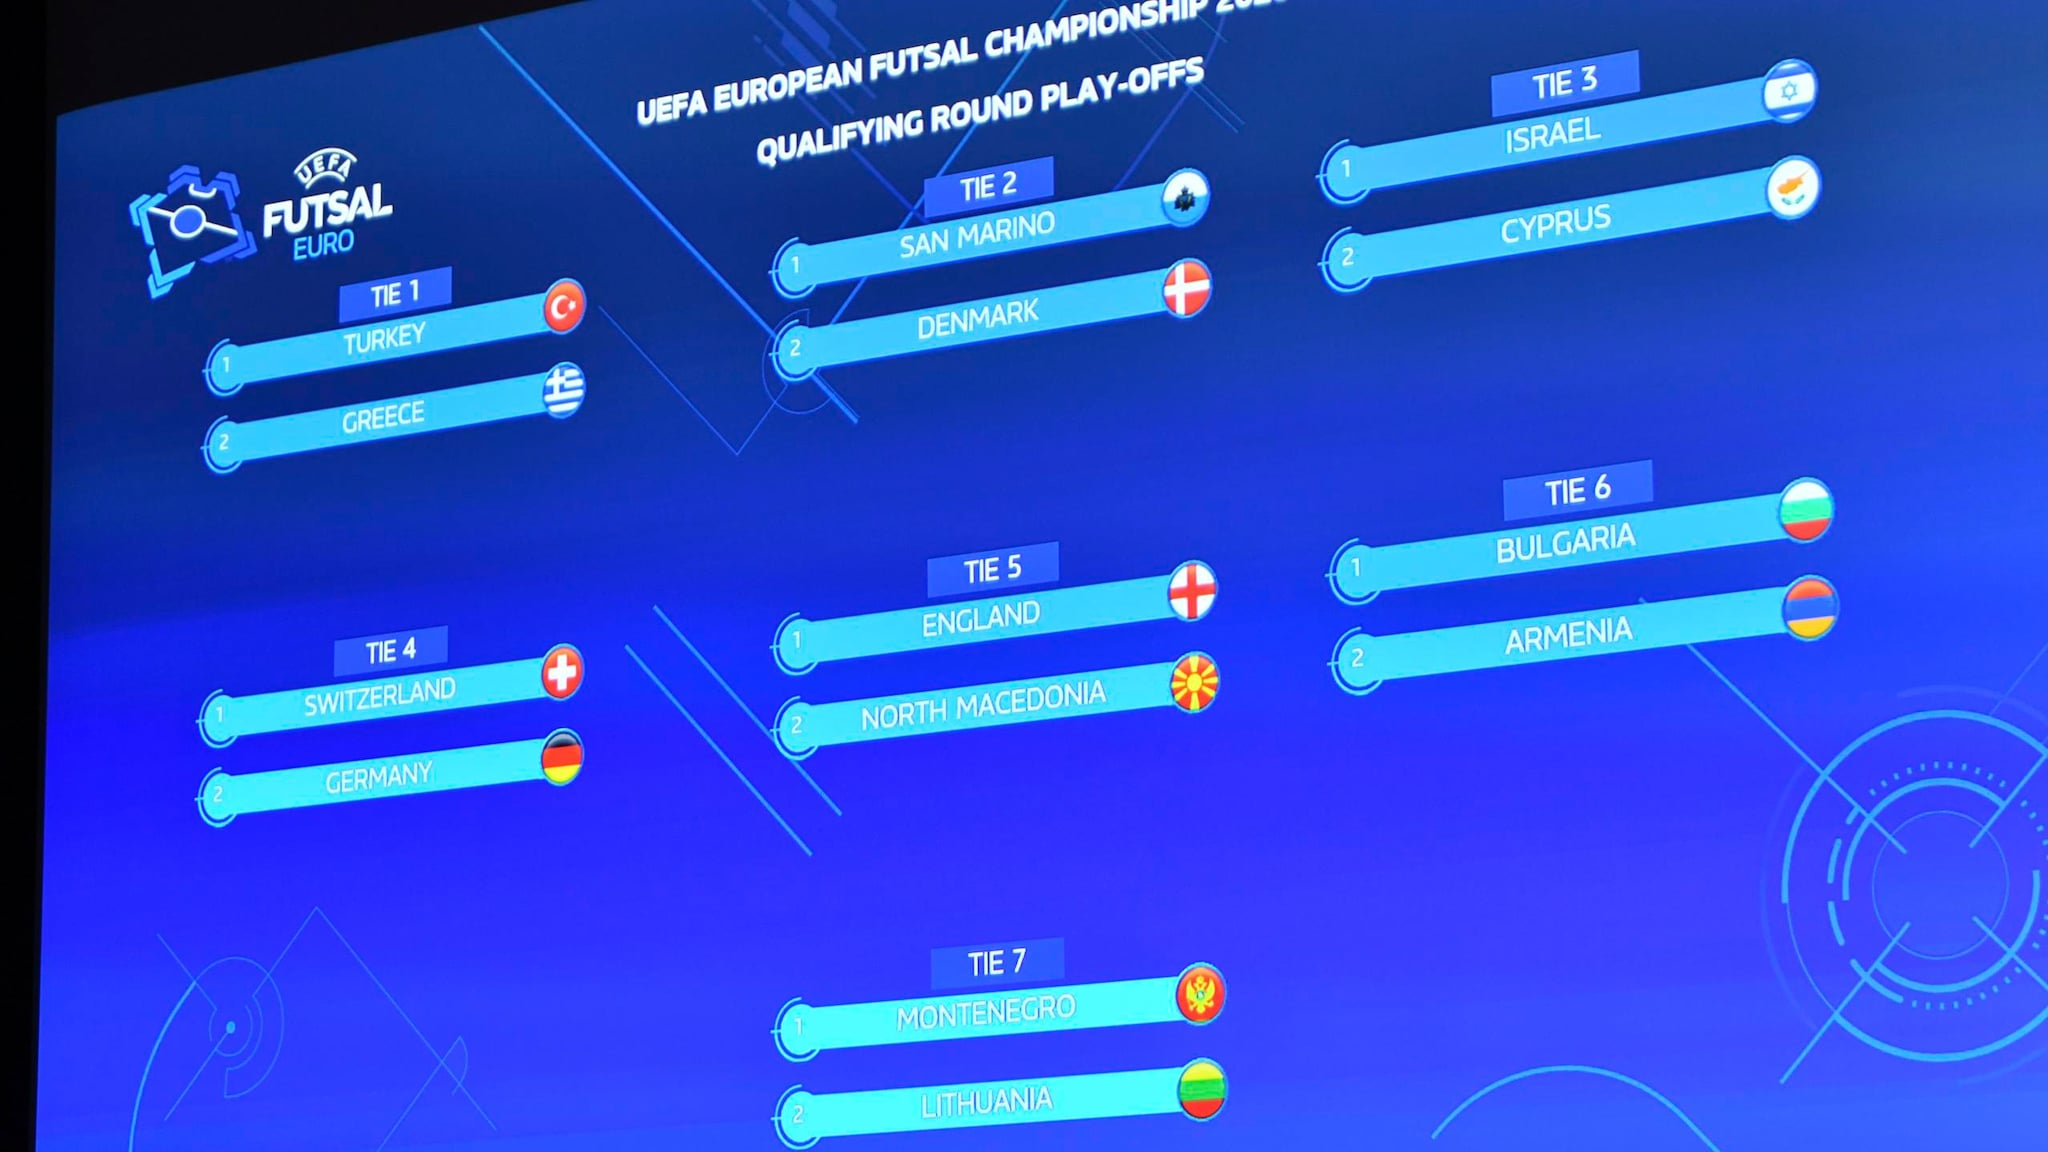 Qualifying round play-offs from Monday